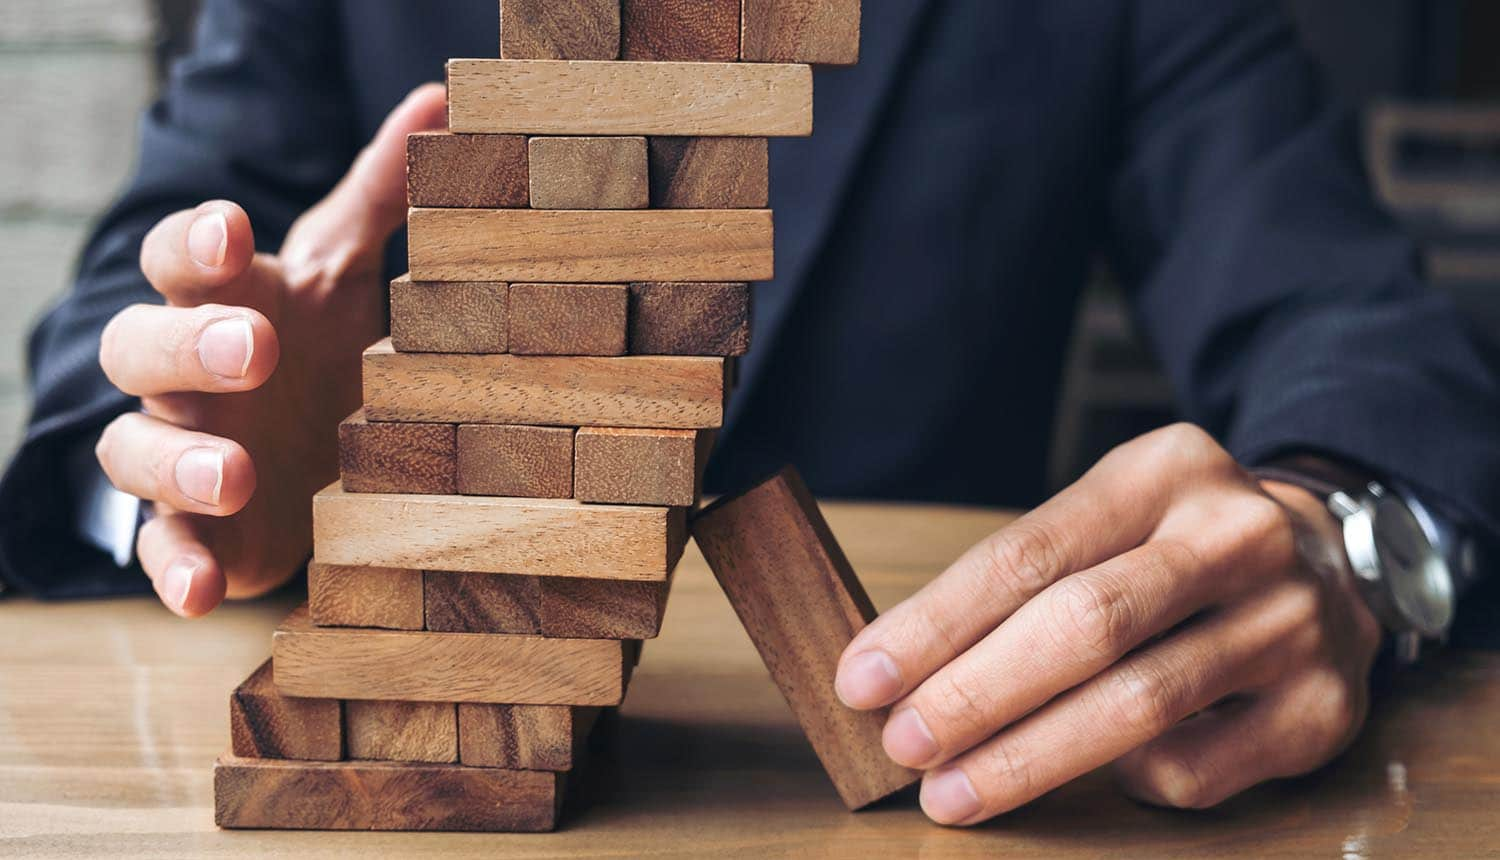 Image of man propping up a stack of blocks using a block showing how Big Tech are too big to fail and will require government support